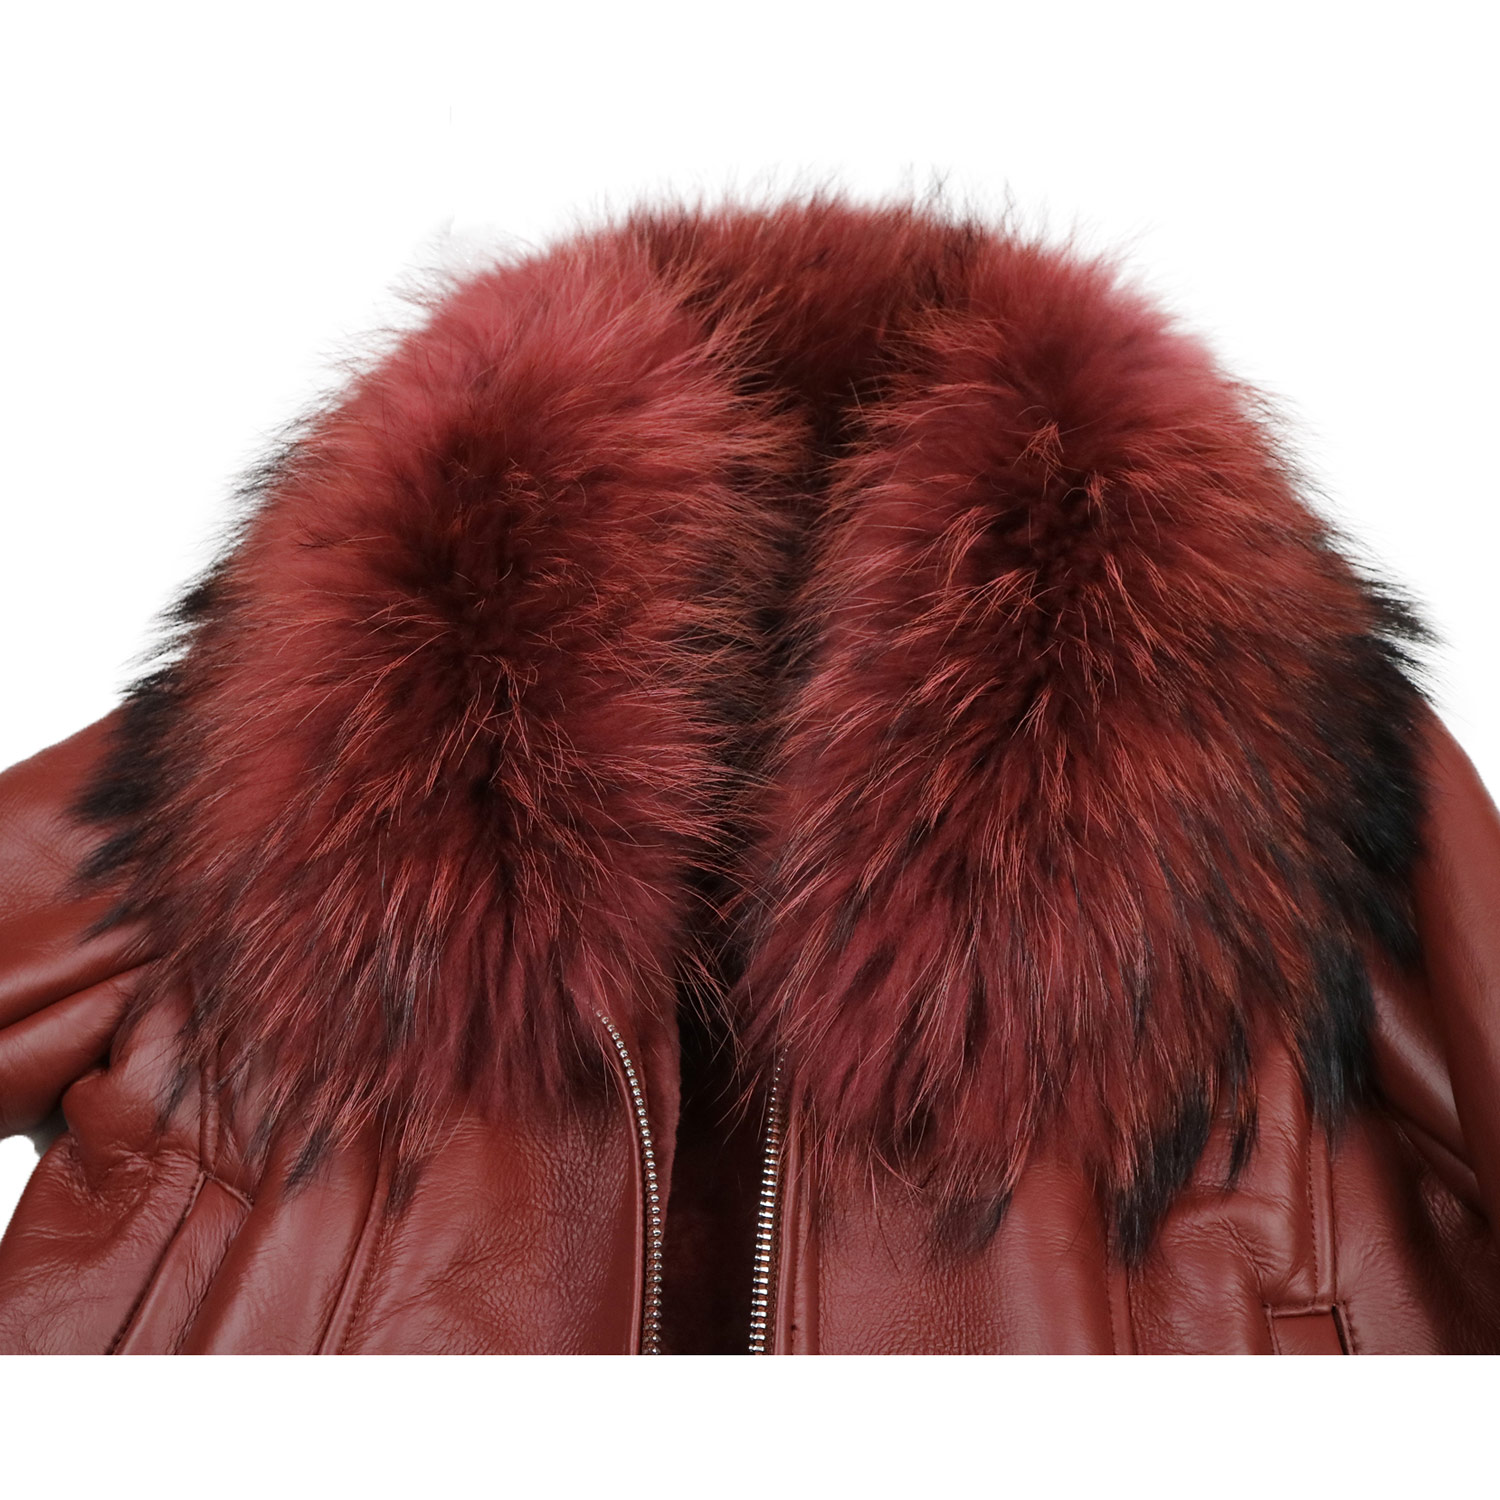 Women Real Double Faced Merino Sheep Fur Coat Winter Warm Fashion Genuine Leather Jacket Natural Large Raccoon Fur Collar Coat